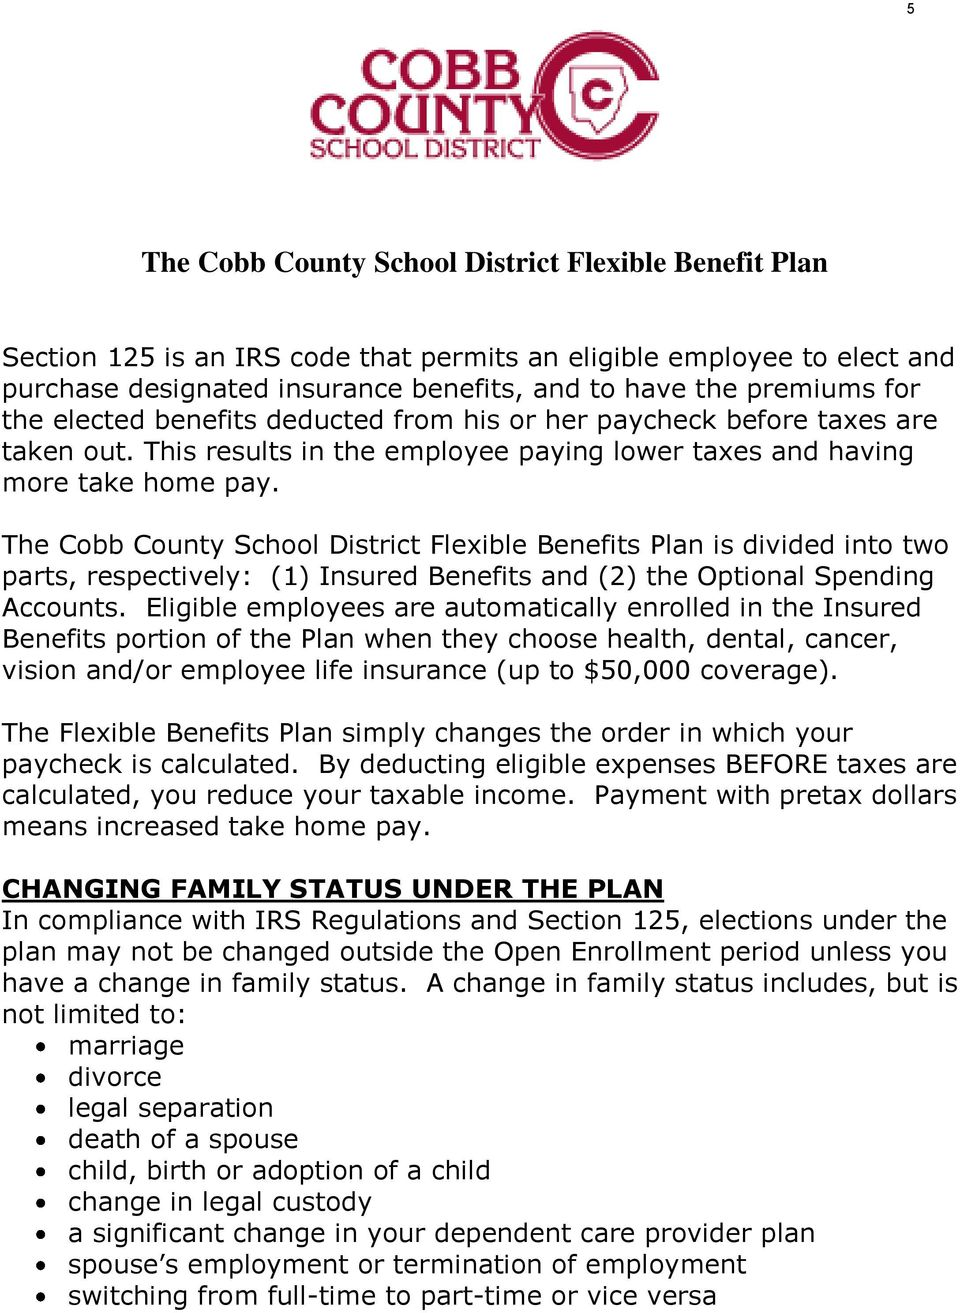 The Cobb County School District Flexible Benefits Plan is divided into two parts, respectively: (1) Insured Benefits and (2) the Optional Spending Accounts.